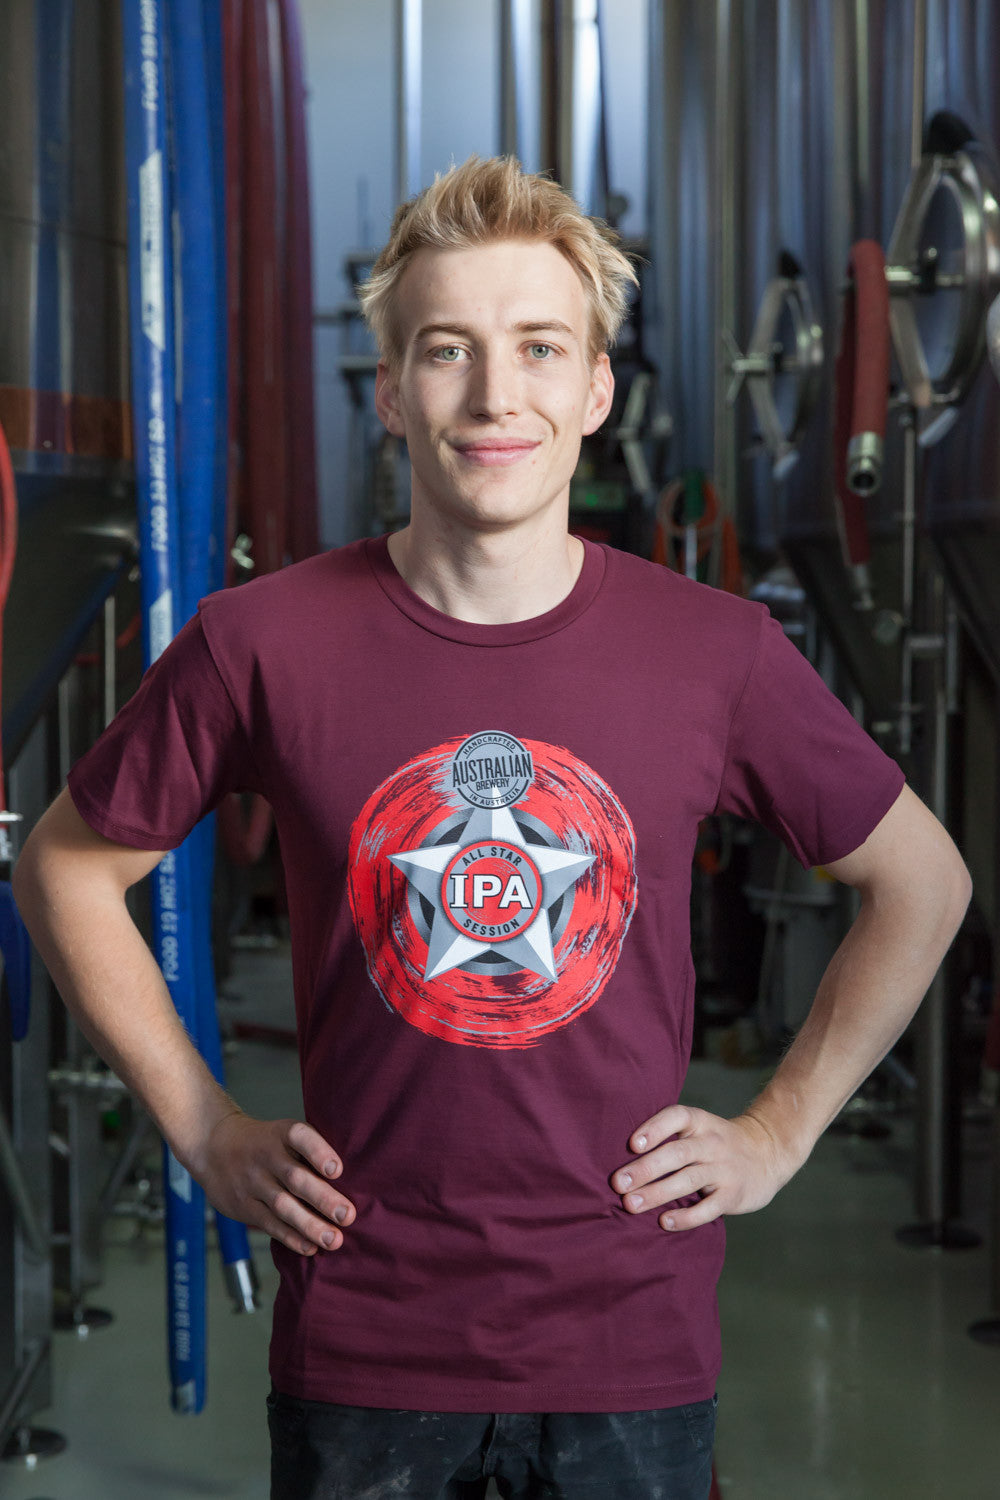 Australian Brewery All Star Session IPA T-Shirt